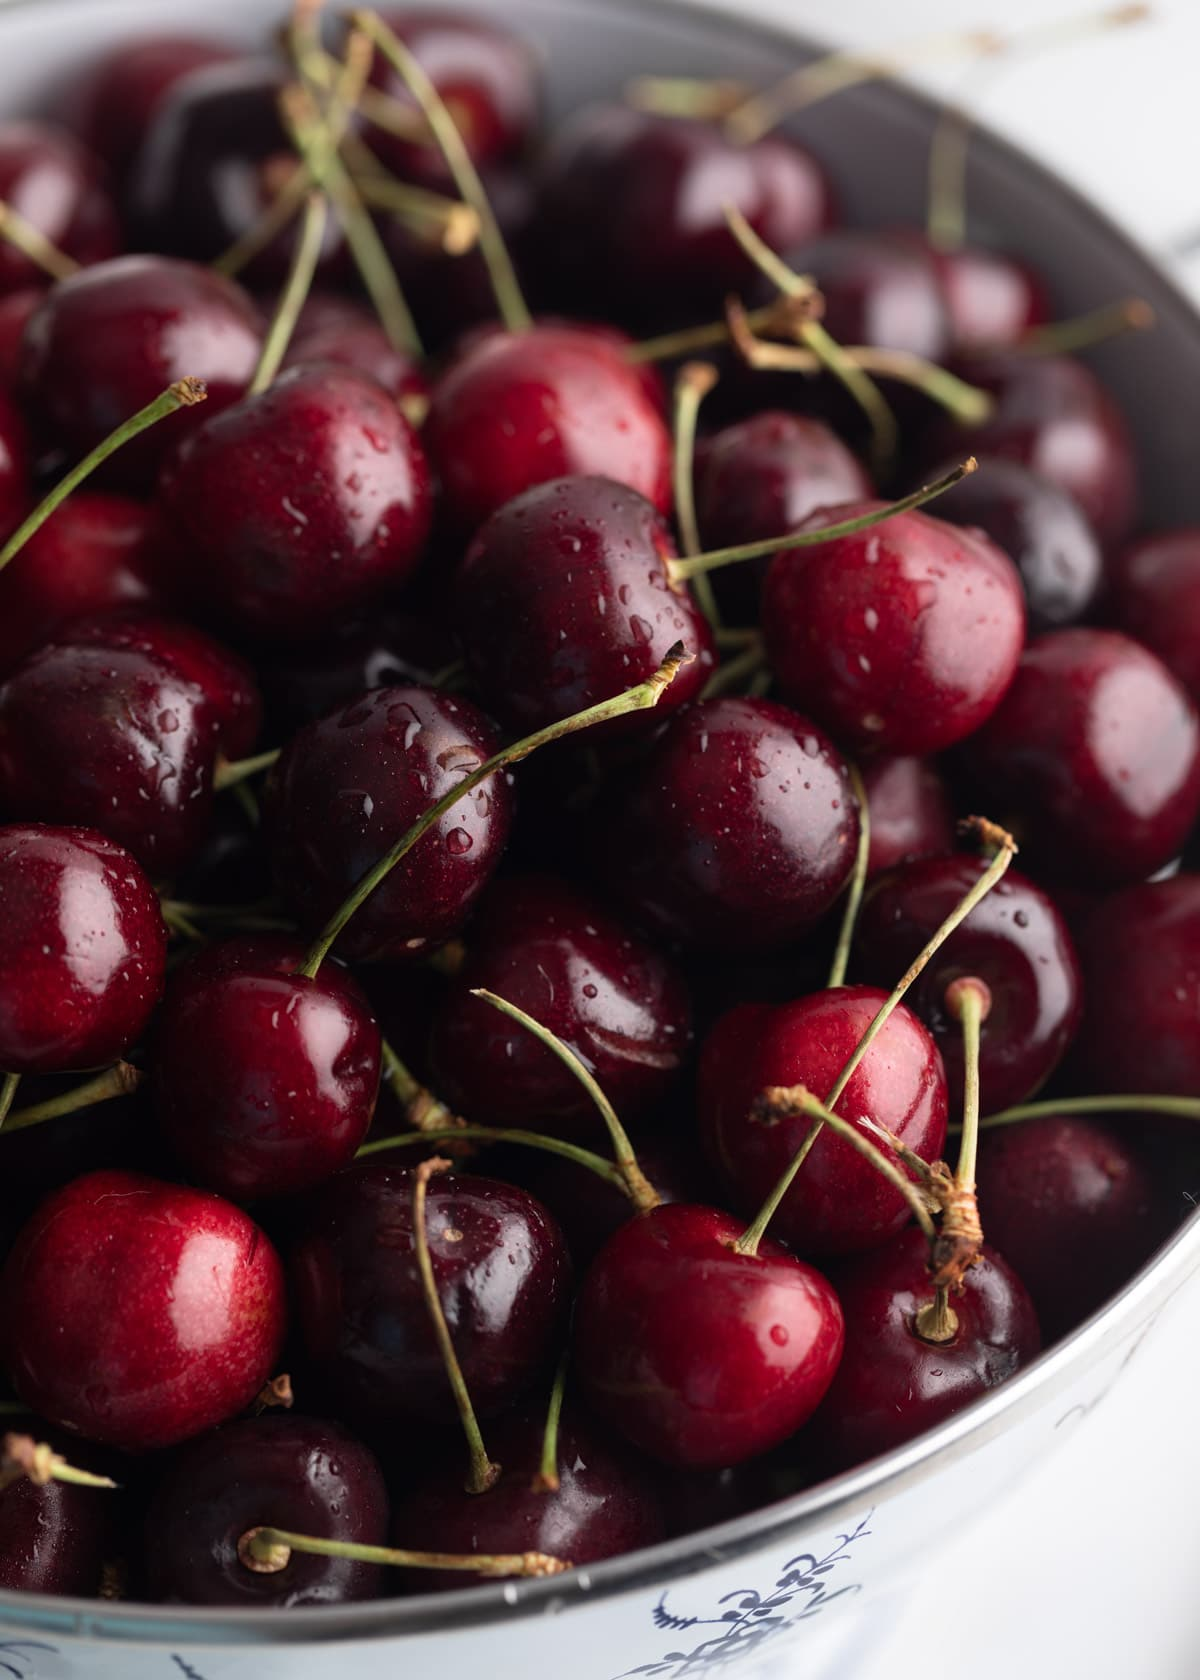 closeup photo of fresh Bing cherries in a white enameled colander